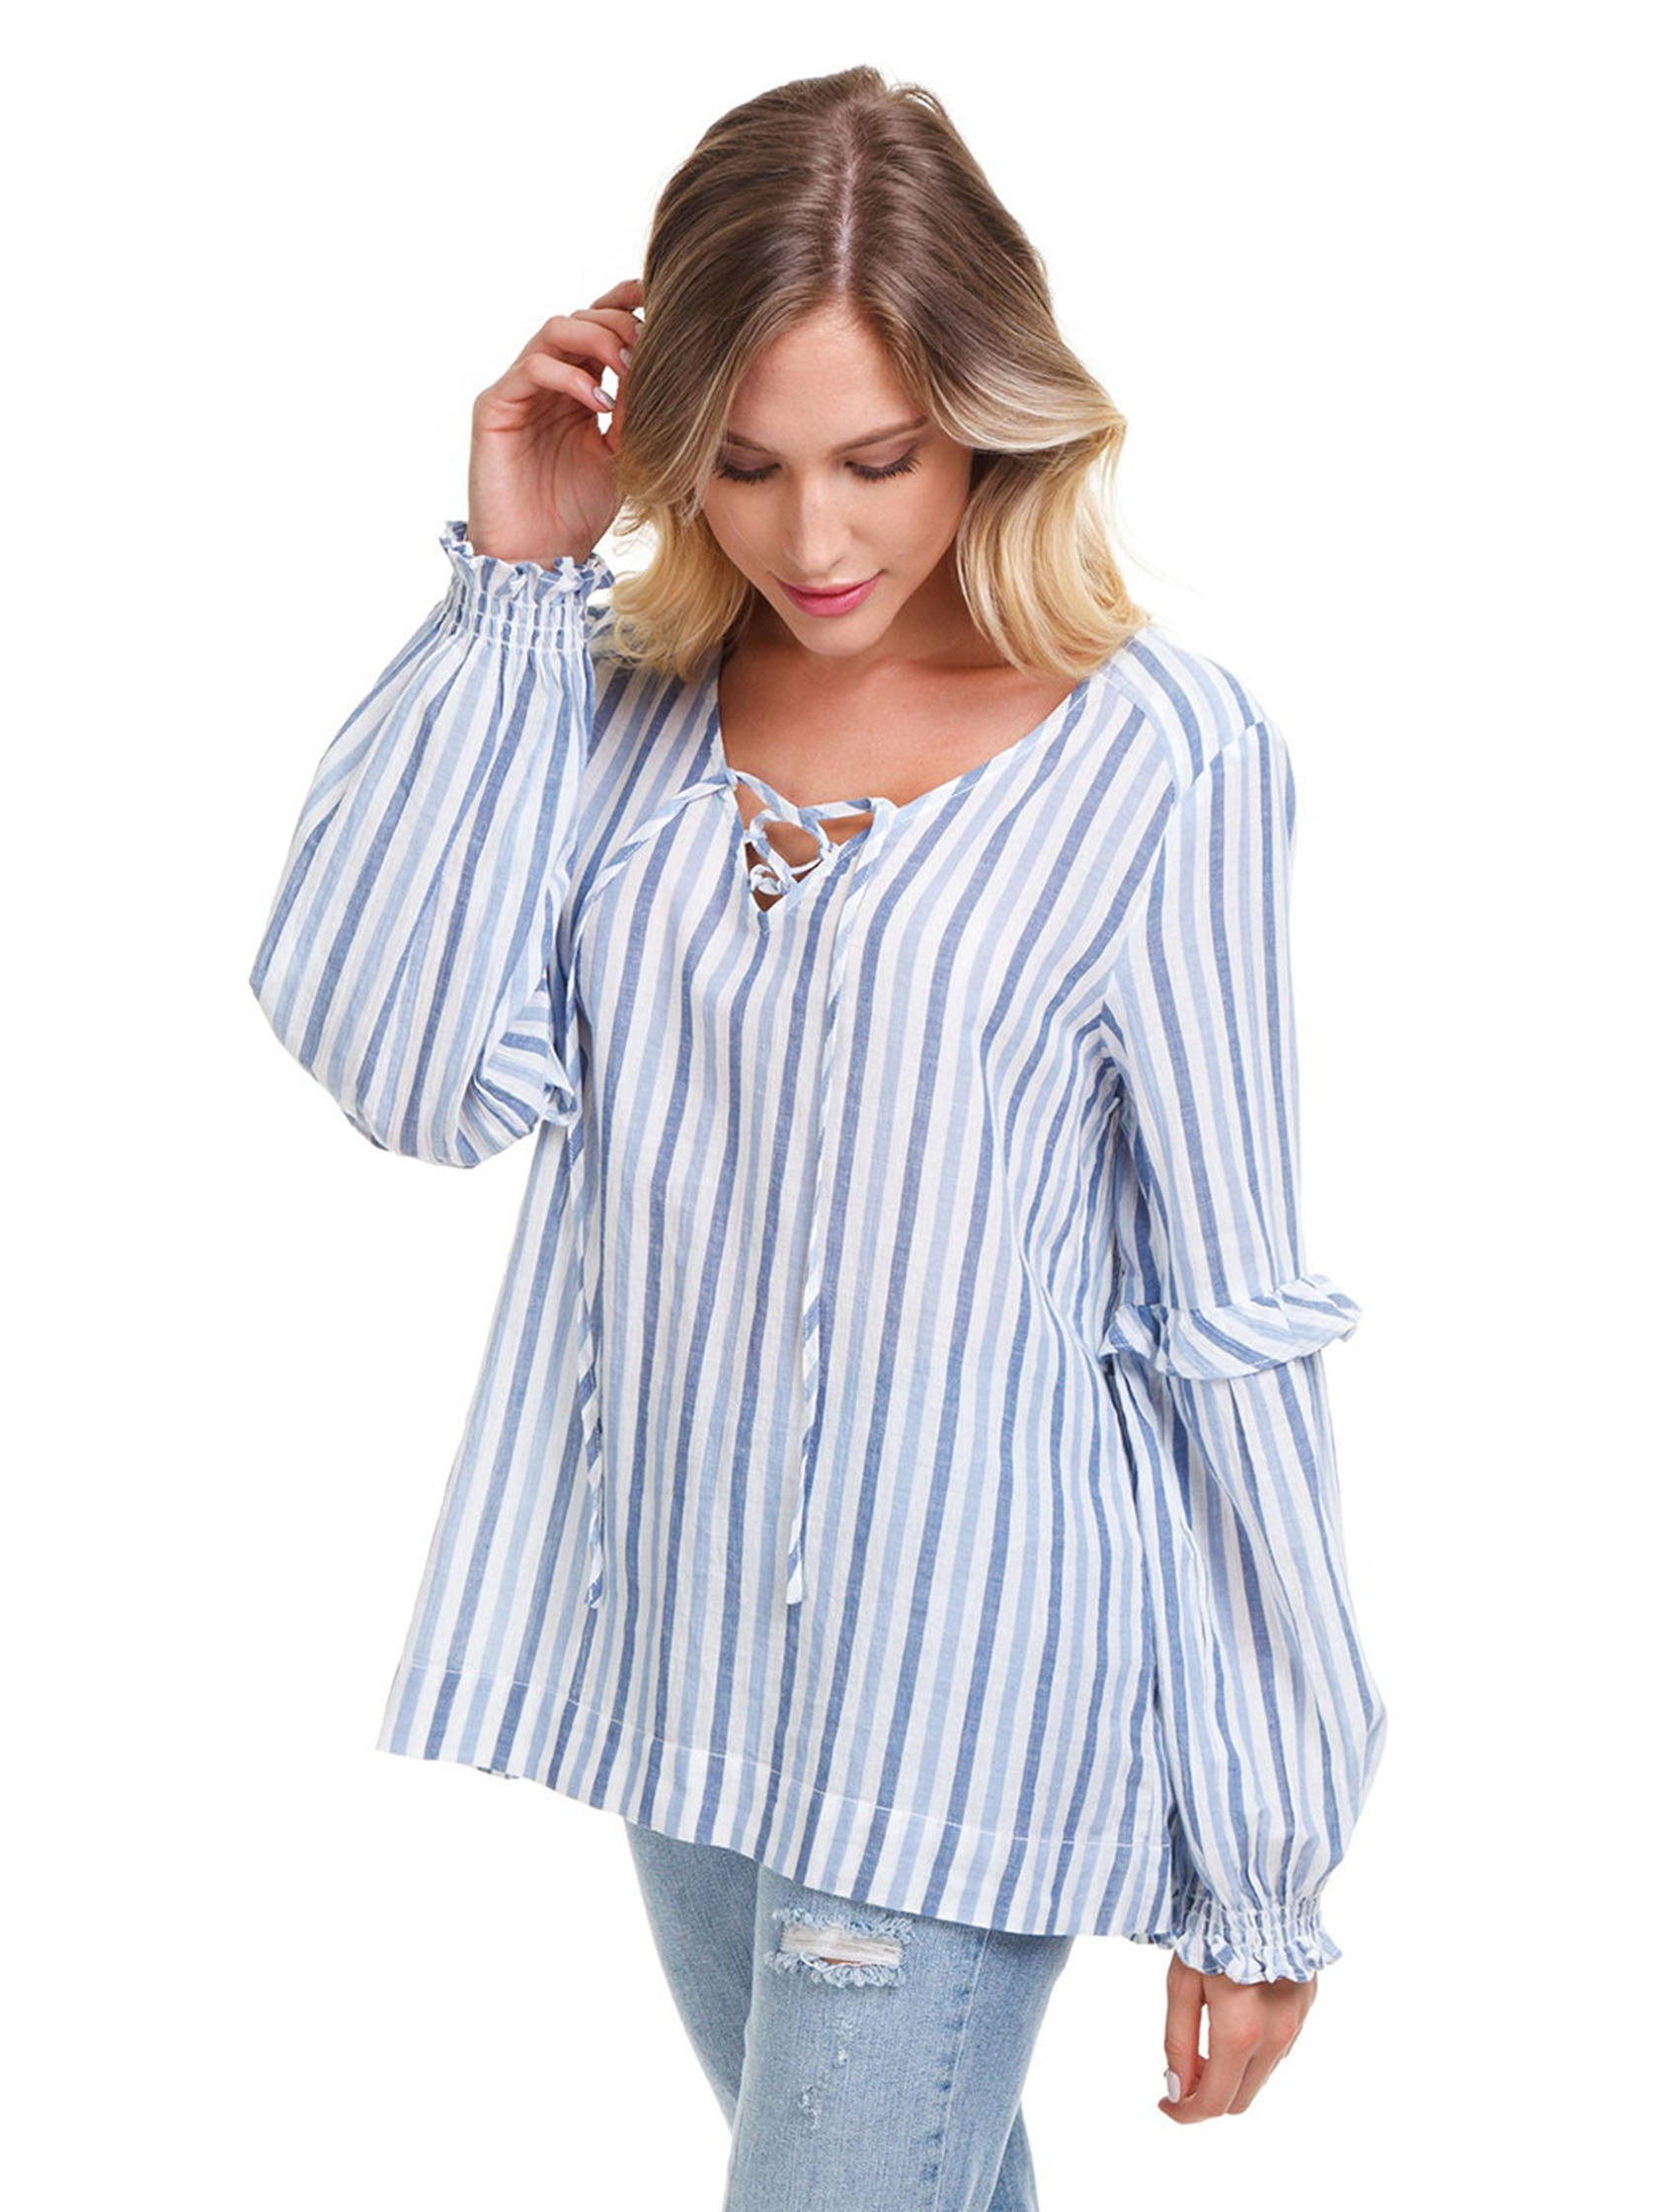 Women wearing a top rental from SANCTUARY called Lila Lace Up Ruffle Sleeve Blouse